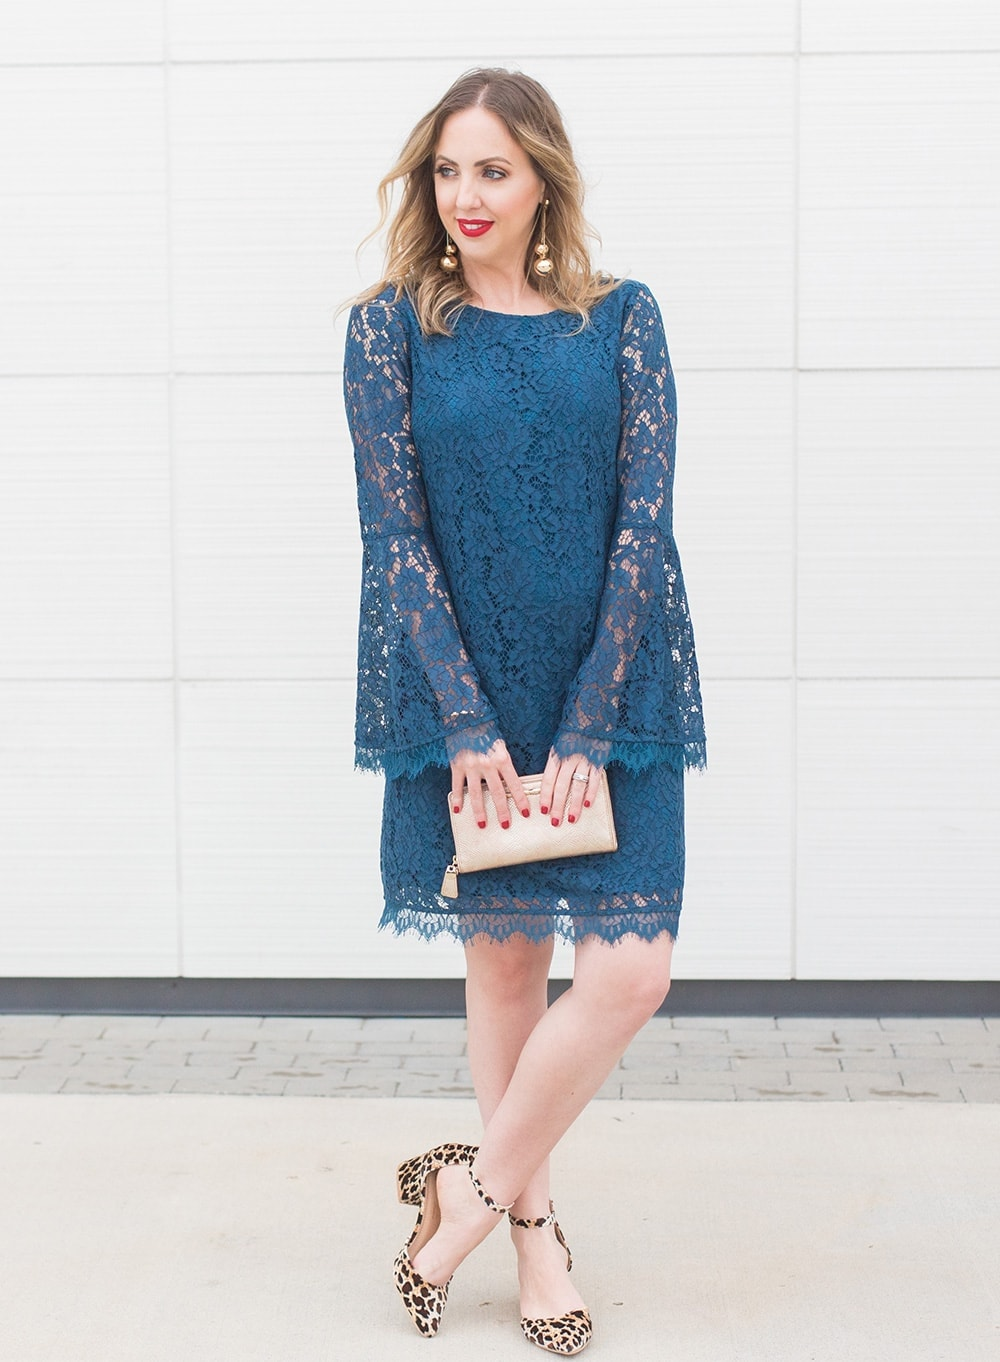 blue bell sleeve lace dress with gold clutch and leopard print block heels - Houston blogger Meg O. on the Go